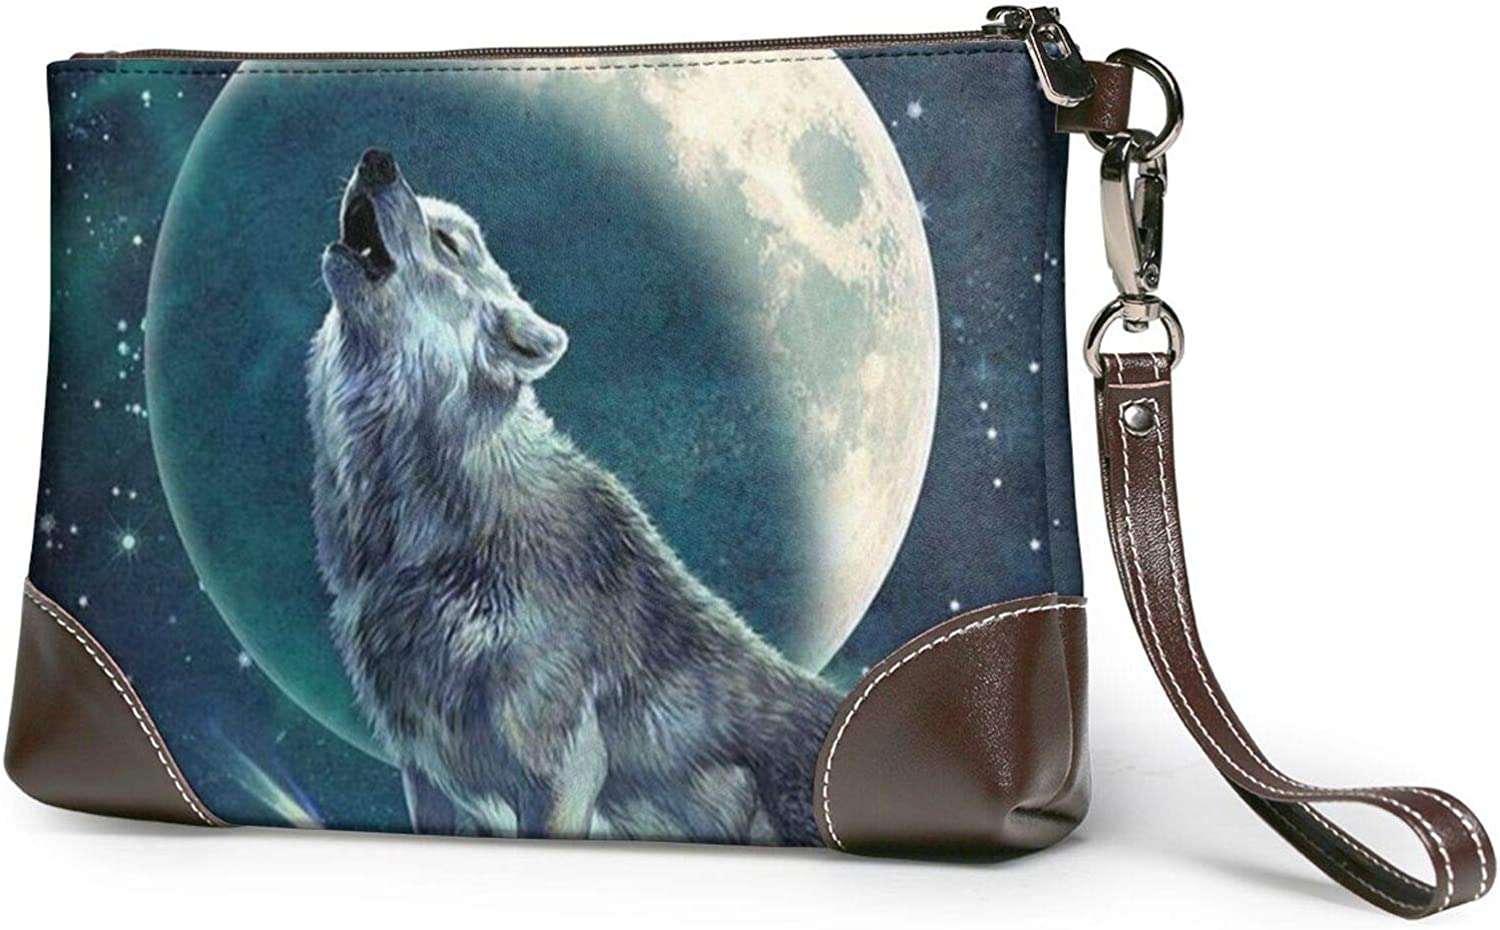 Wolf Max 79% OFF Howling Moon Clutch Purses P Wallet Wristlet free shipping Leather